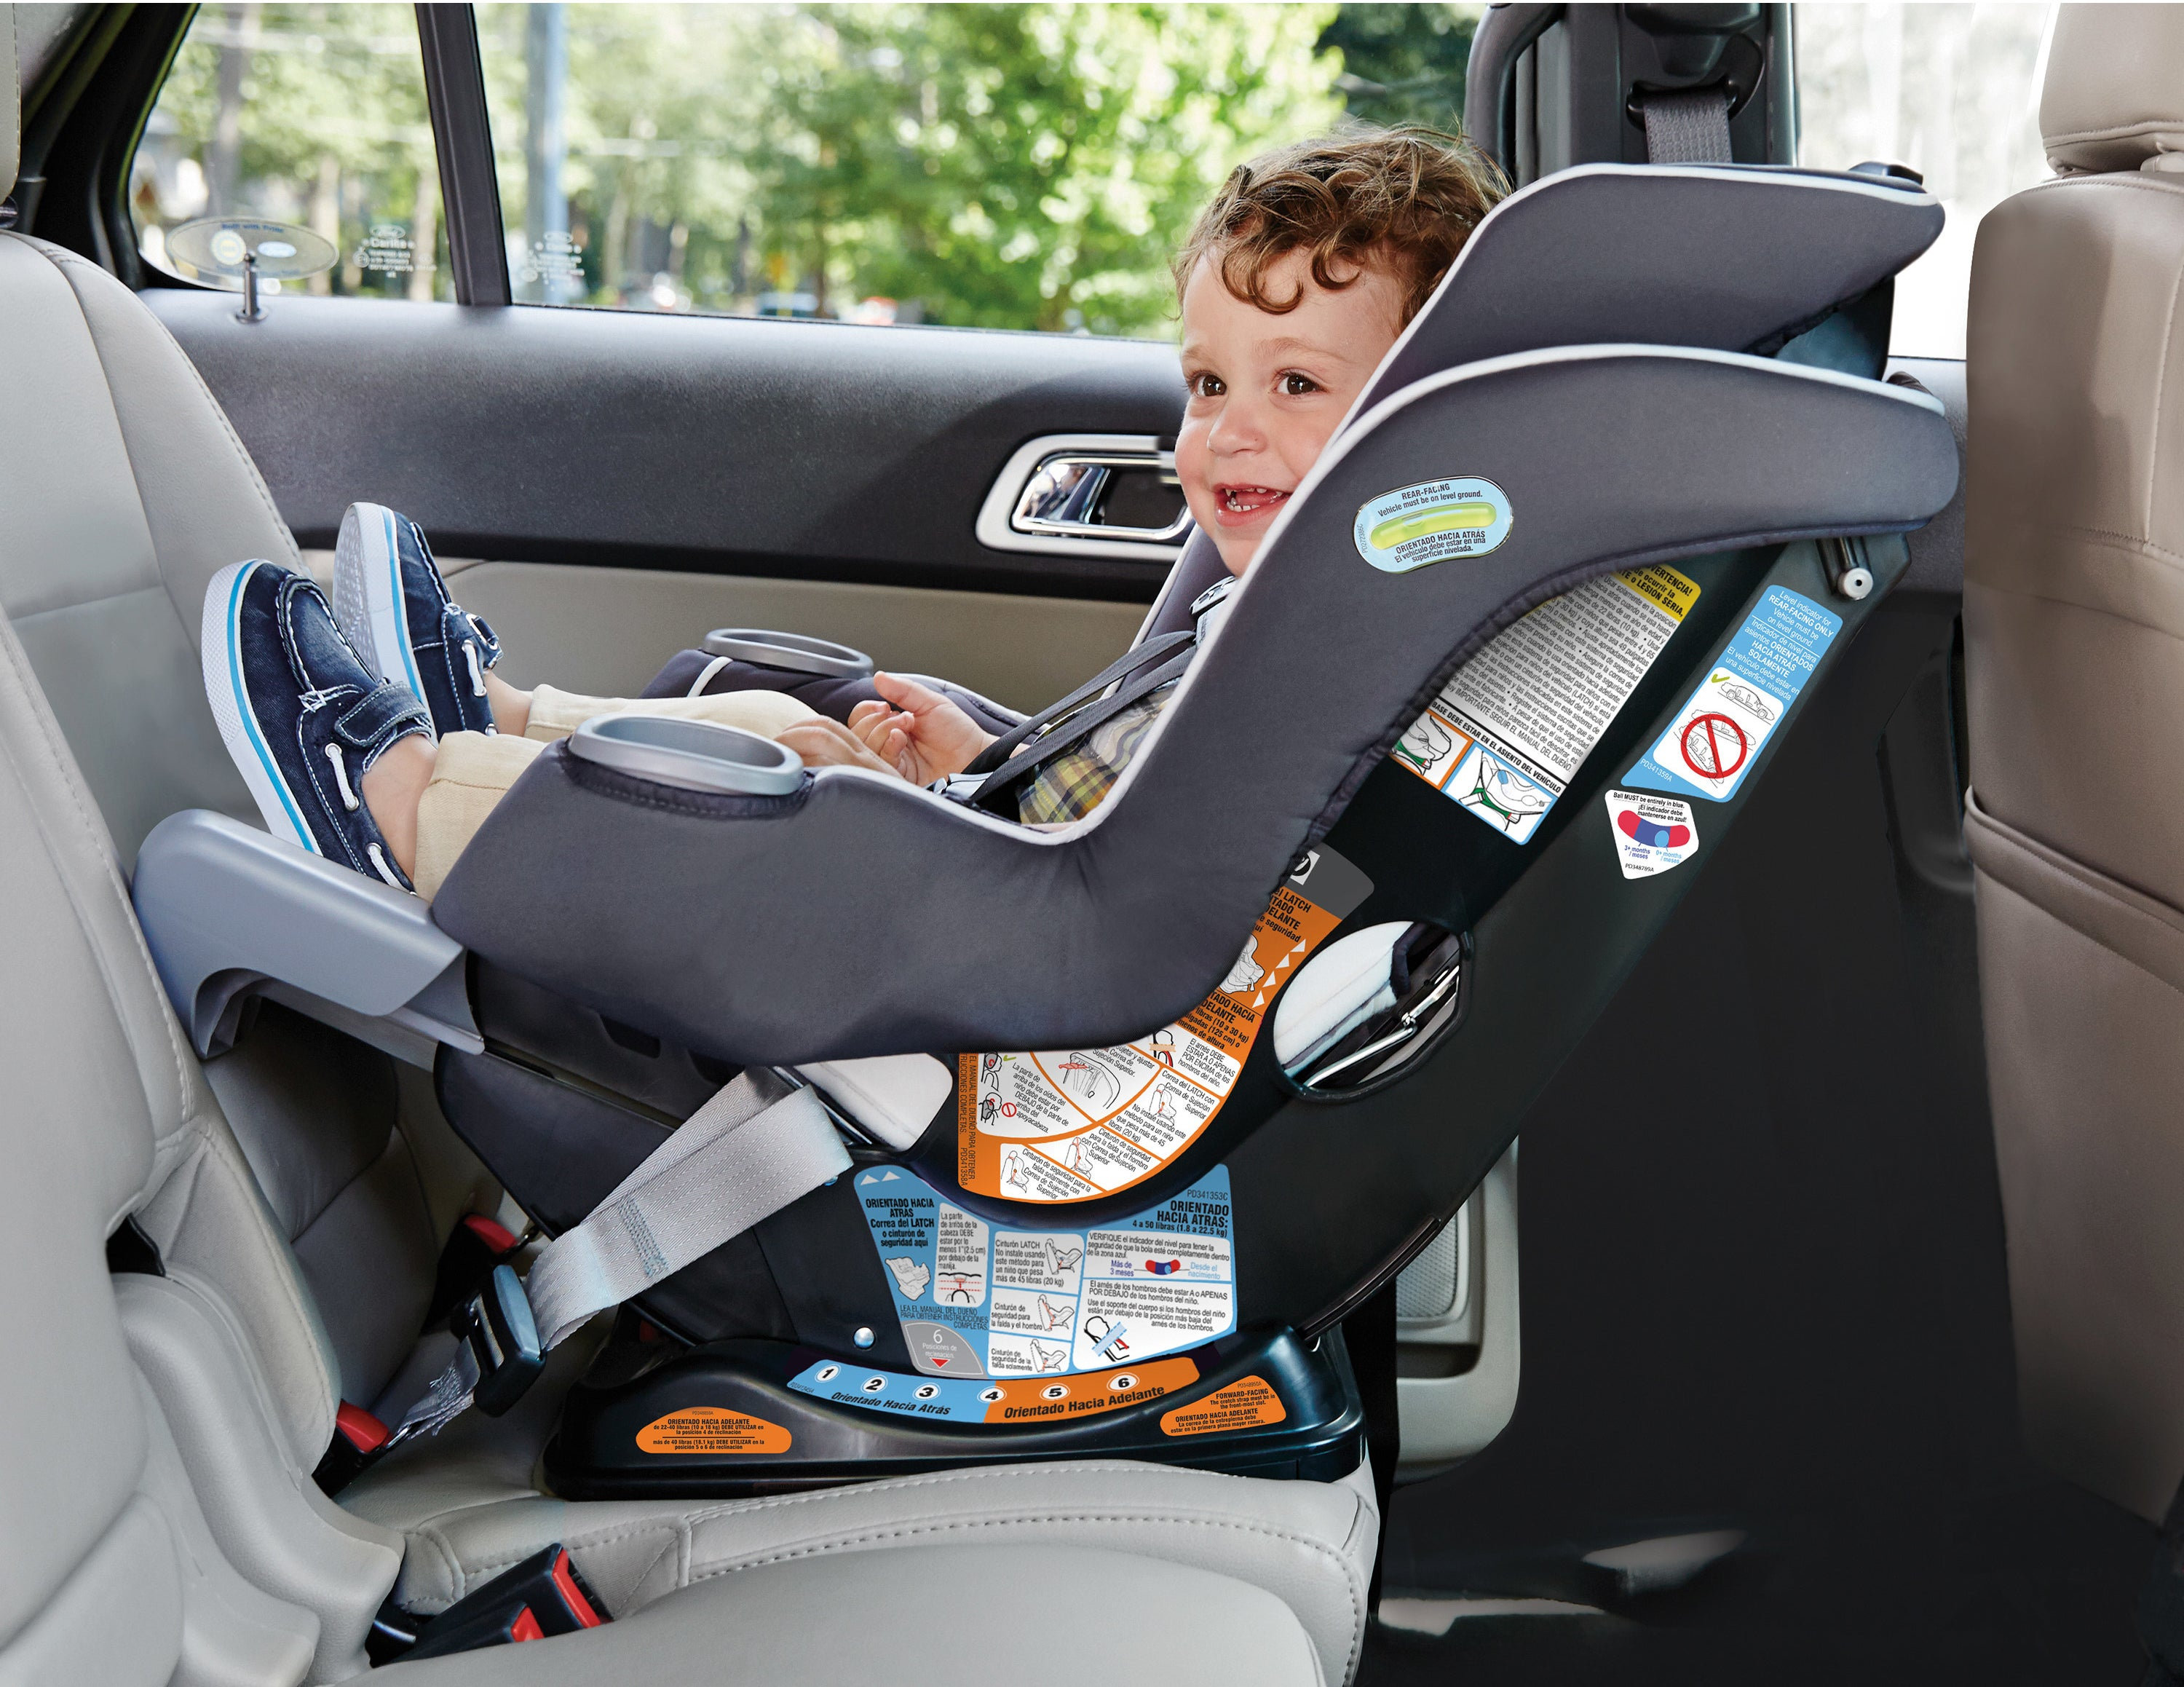 A child in the rear-facing car seat